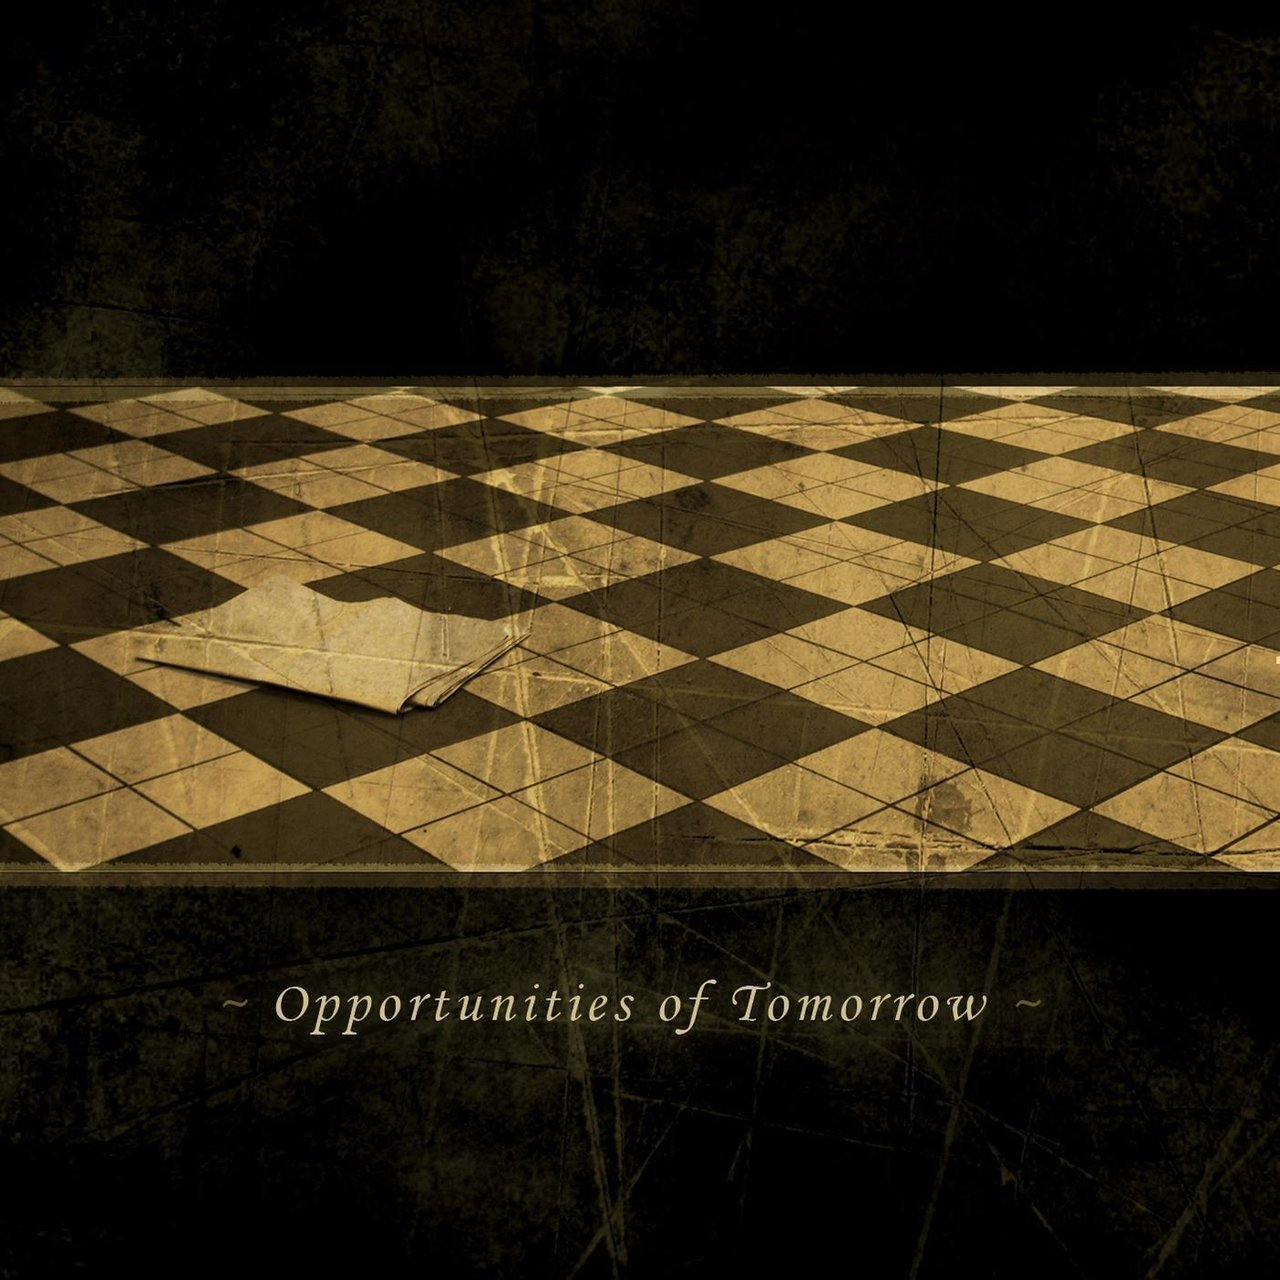 Opportunities of Tomorrow